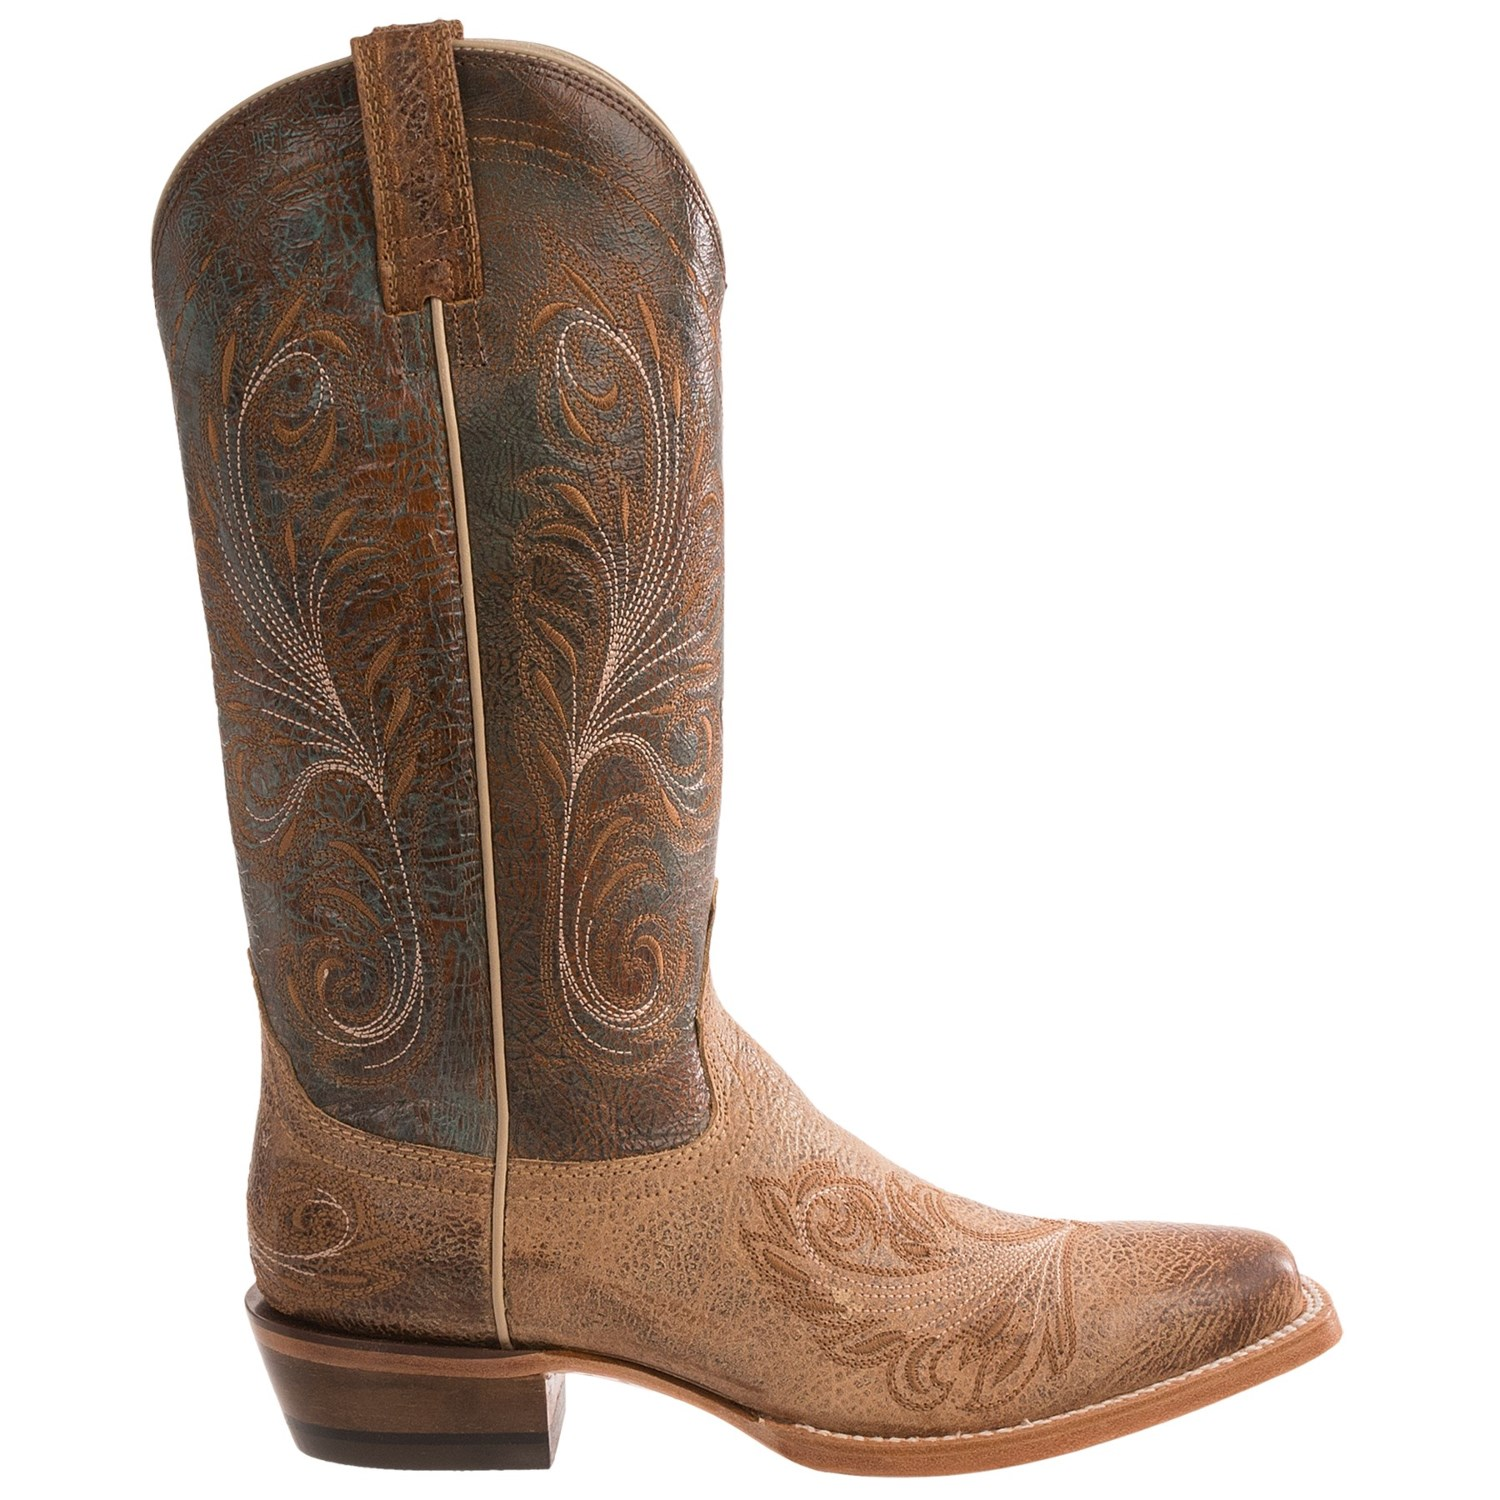 Ariat Cowboy Boots For Women Zm9iHneg